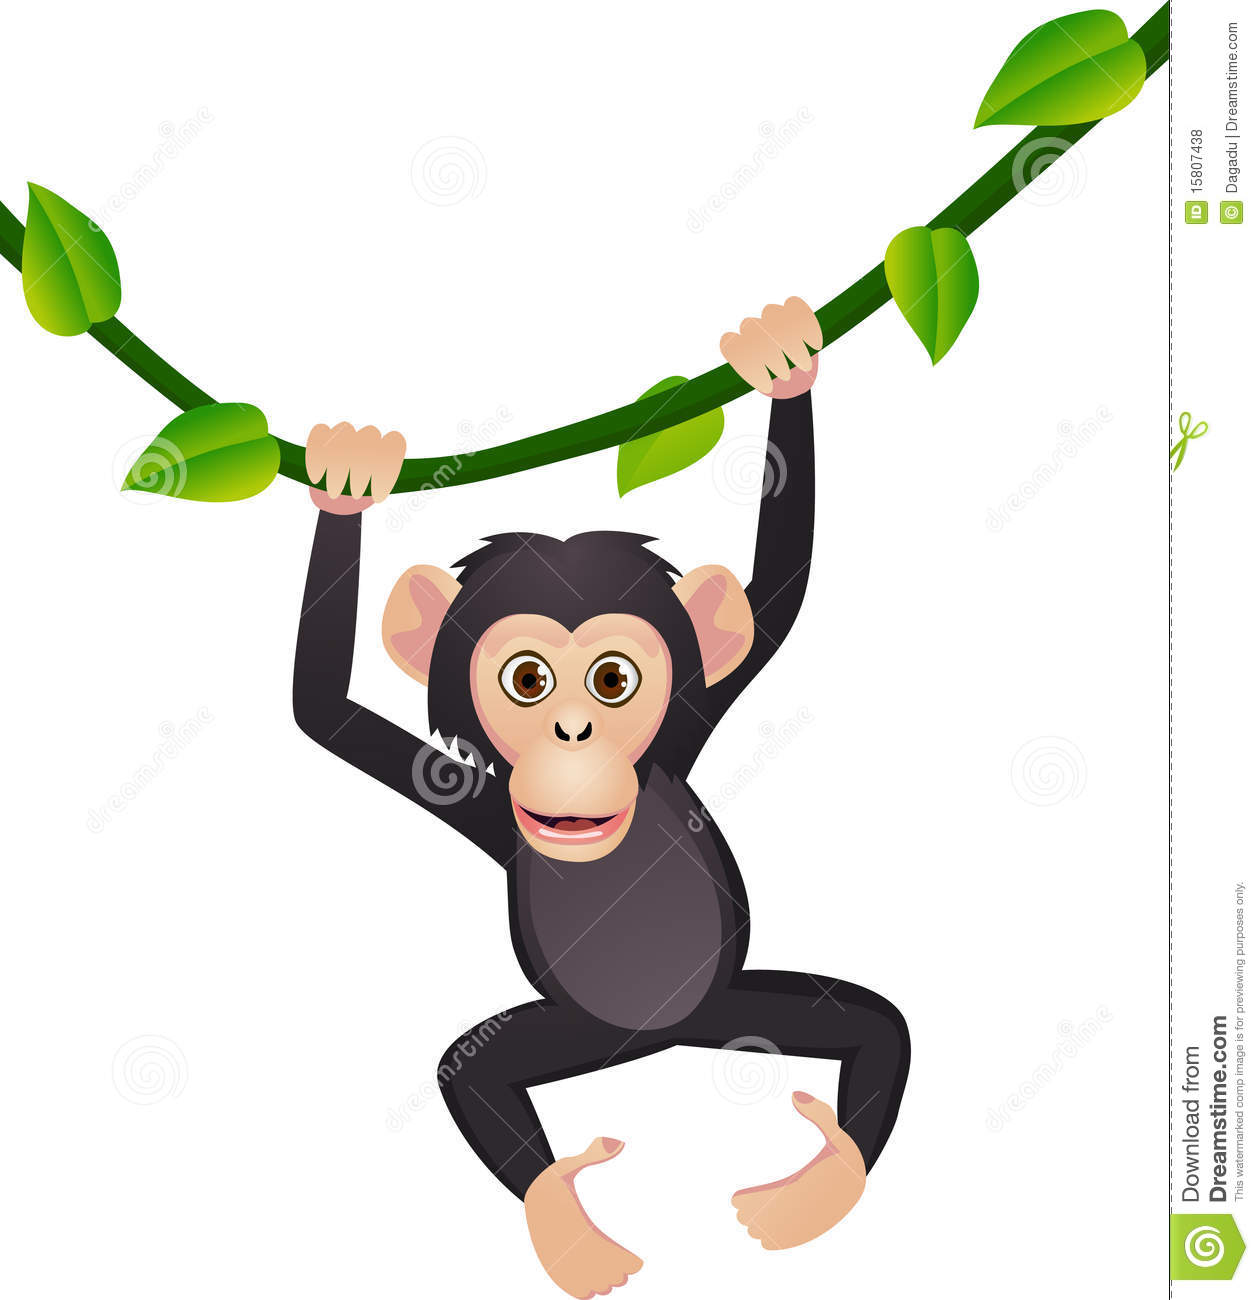 Free chimpanzee clipart png royalty free Chimpanzee Clipart | Free download best Chimpanzee Clipart on ... png royalty free